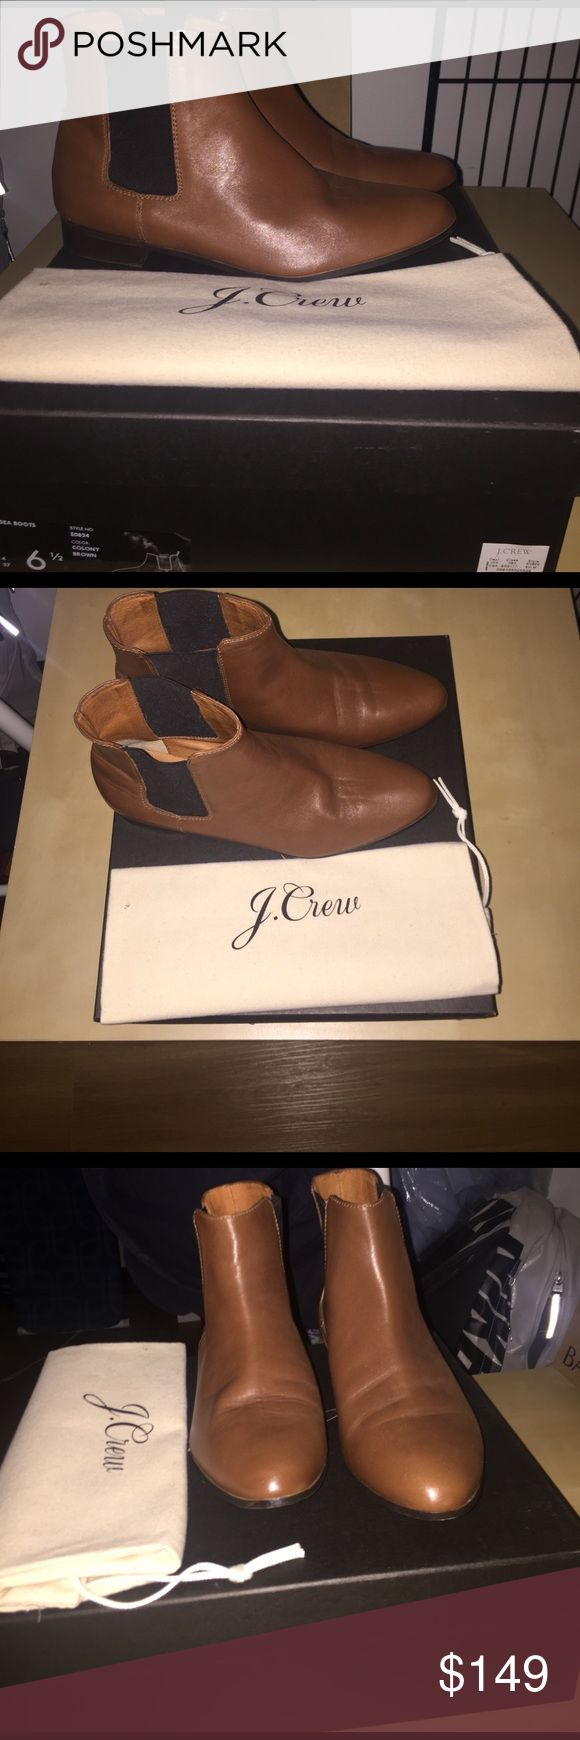 J. Crew Flat Chelsea Boot J. Crew Chelsea boots are made of real leather with elastic panels at the ankle to allow for ease in taking them on and off. Such a comfy shoe! J. Crew Shoes Ankle Boots & Booties